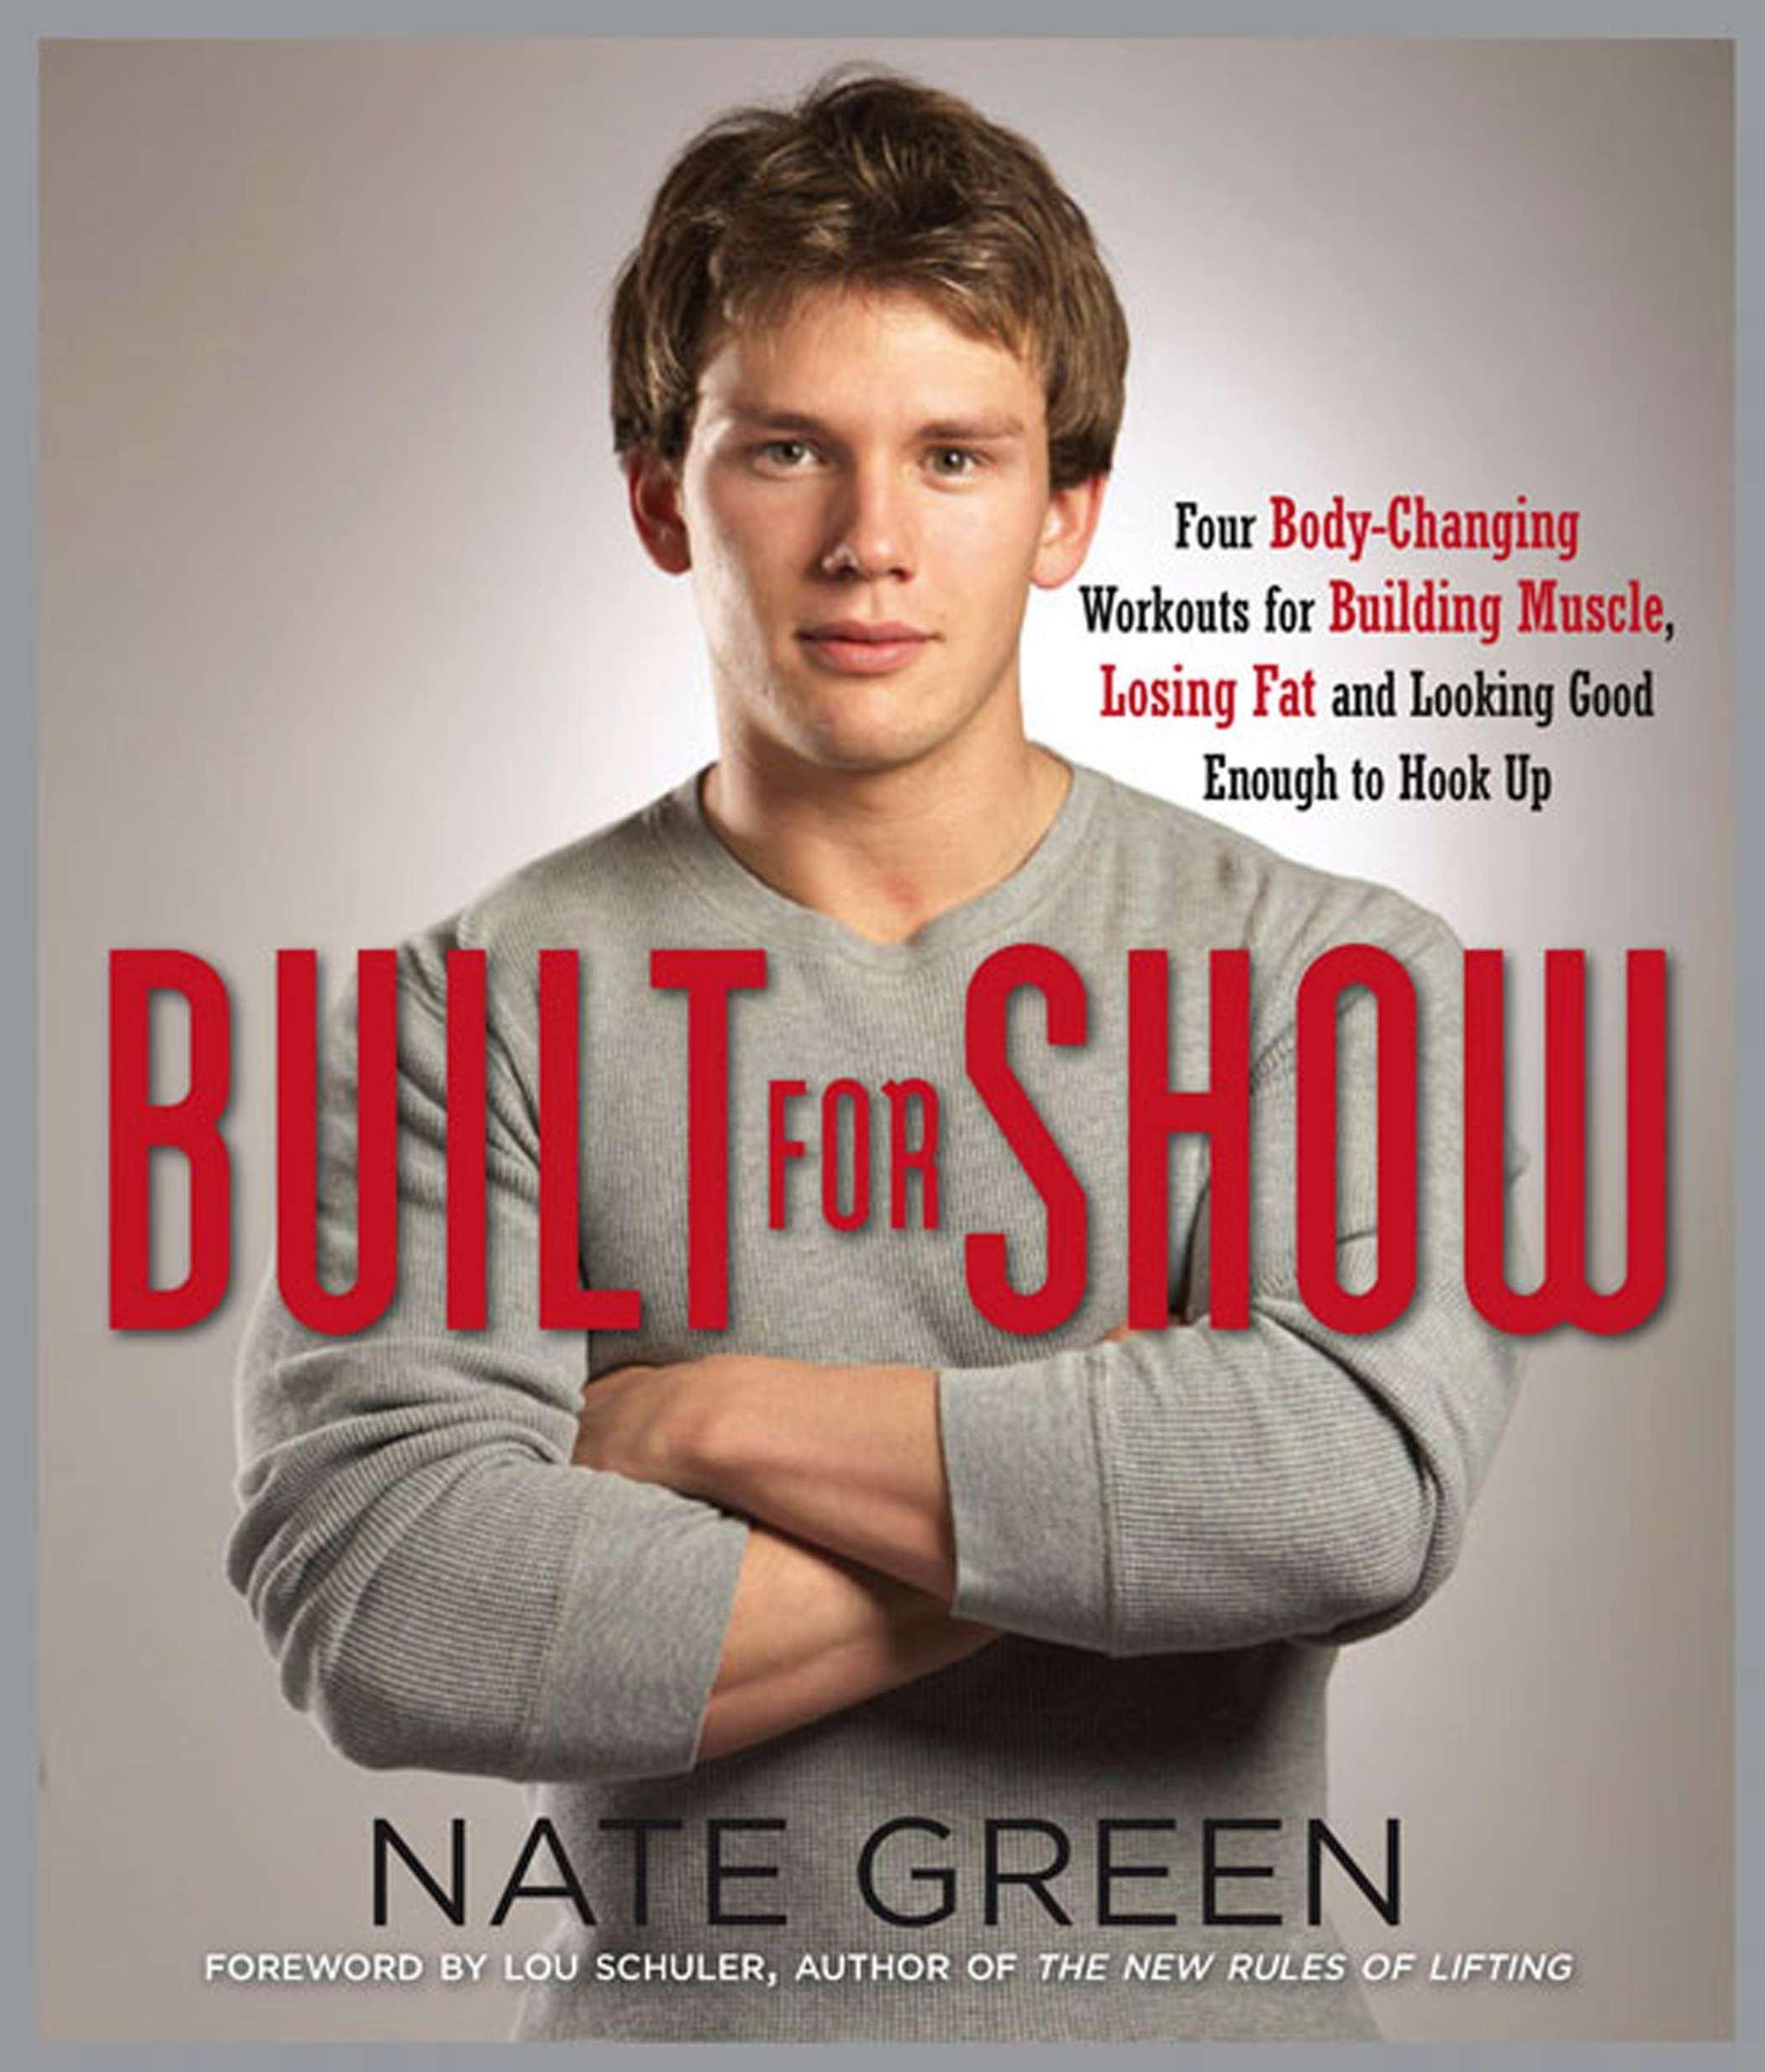 Download Built for Show: Four Body-Changing Workouts for Building Muscle, Losing Fat, andLooking Good Eno ugh to Hook Up ebook